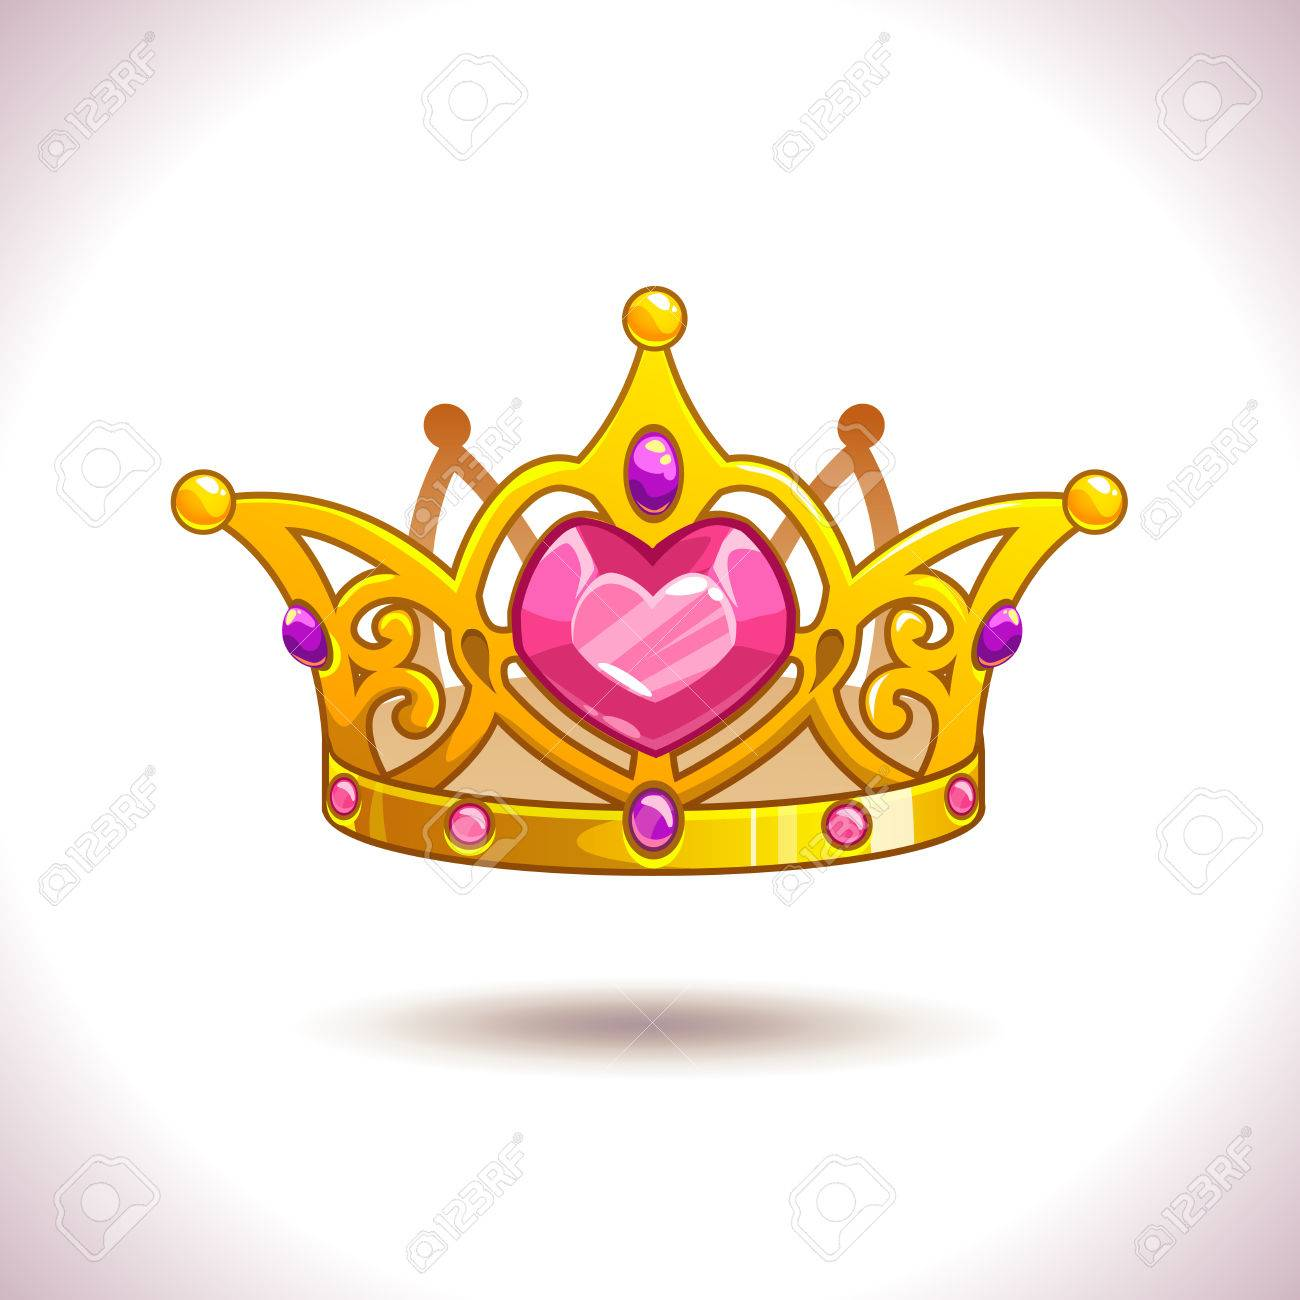 Fancy Cartoon Vector Golden Princess Crown Icon Isolated On Royalty Free Cliparts Vectors And Stock Illustration Image 59276673 71kb, princess crown cartoon drawing picture with tags: fancy cartoon vector golden princess crown icon isolated on